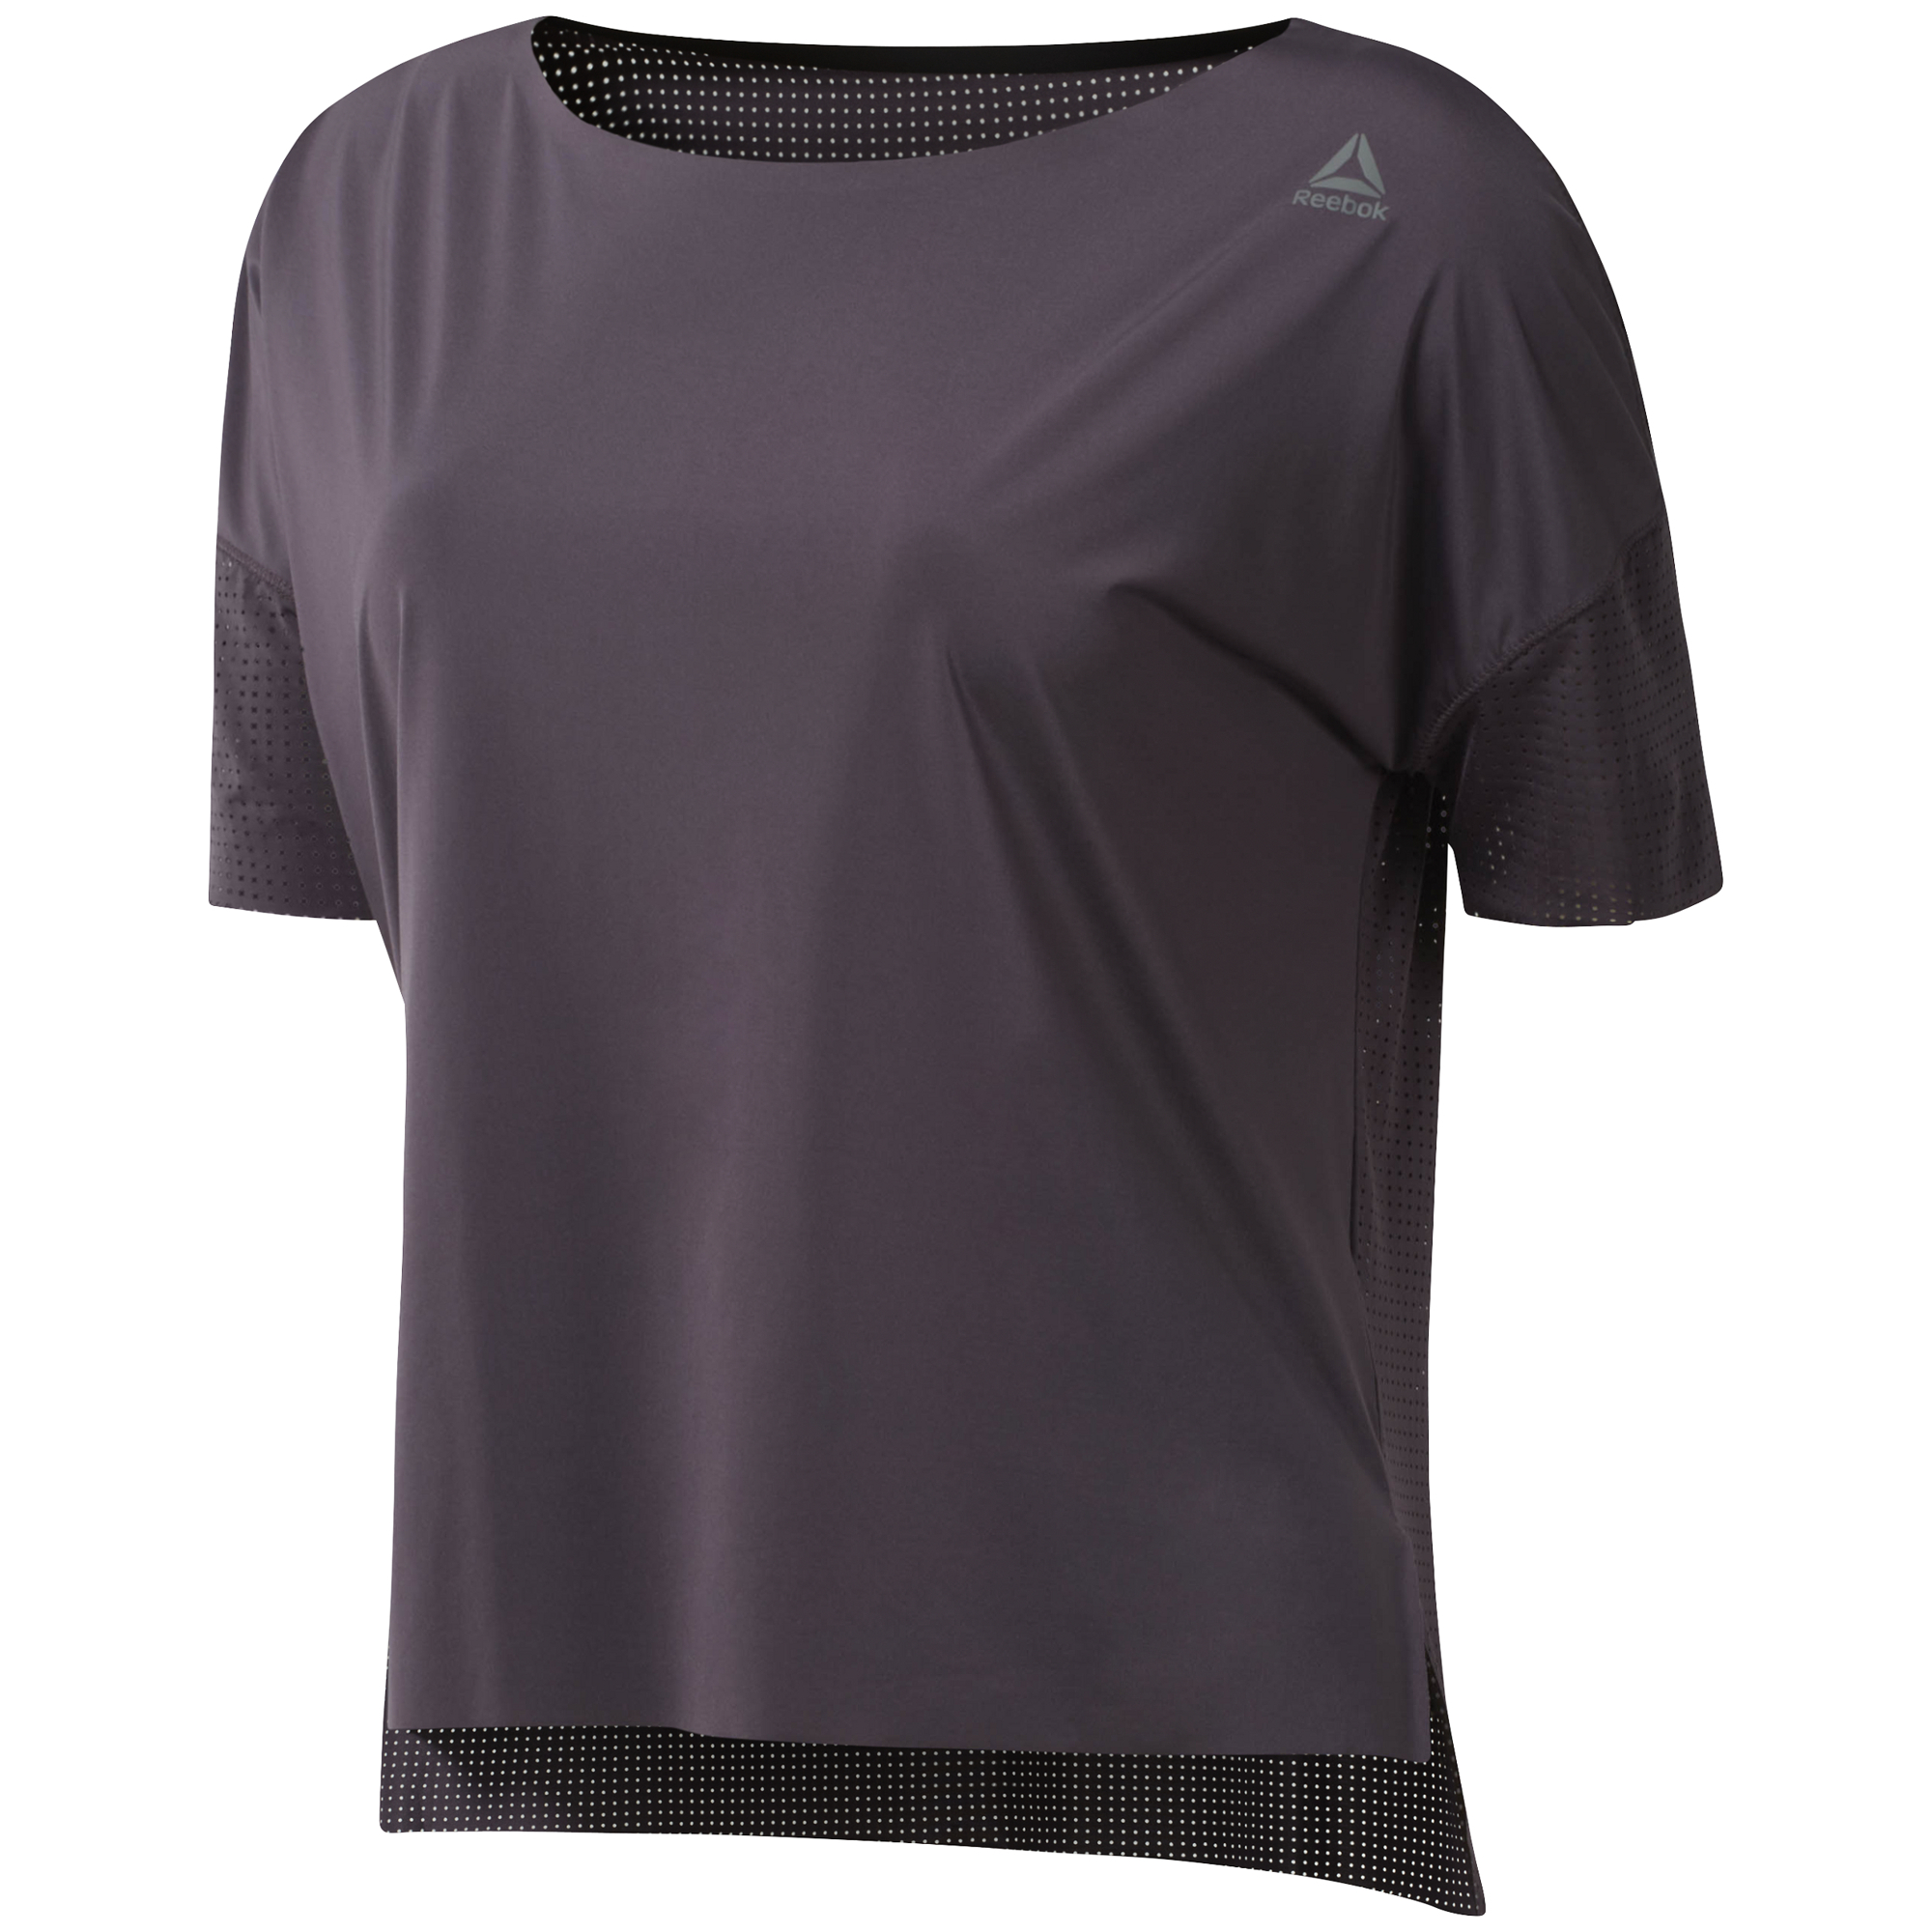 Reebok Women's One Series Perforated Tee | Jerseys